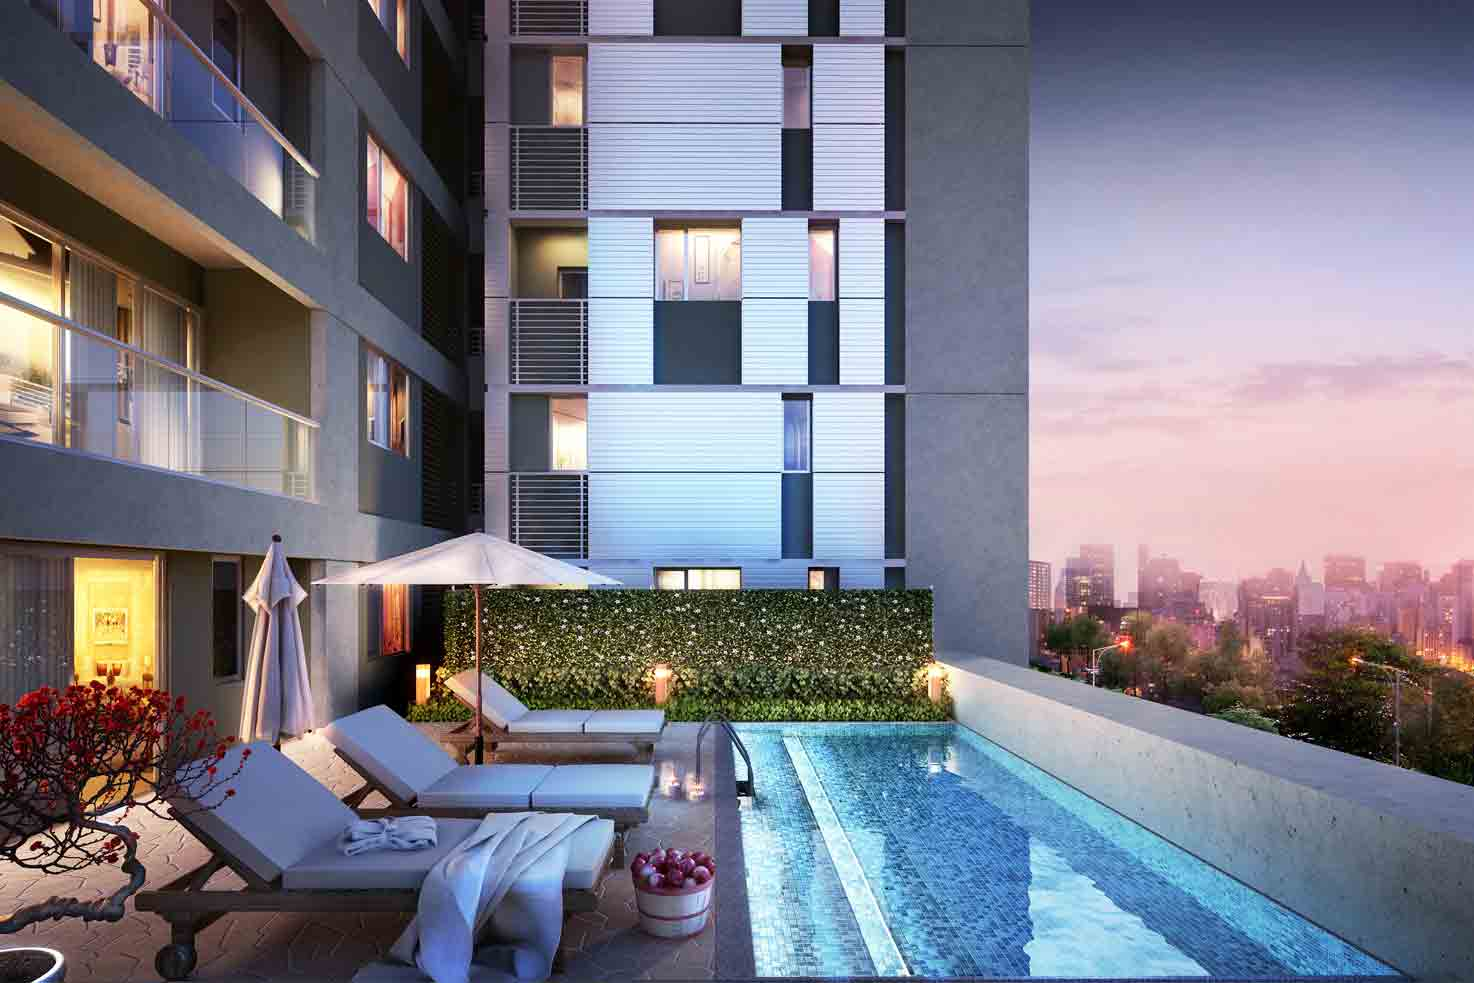 5 BHK Duplex in South Kolkata